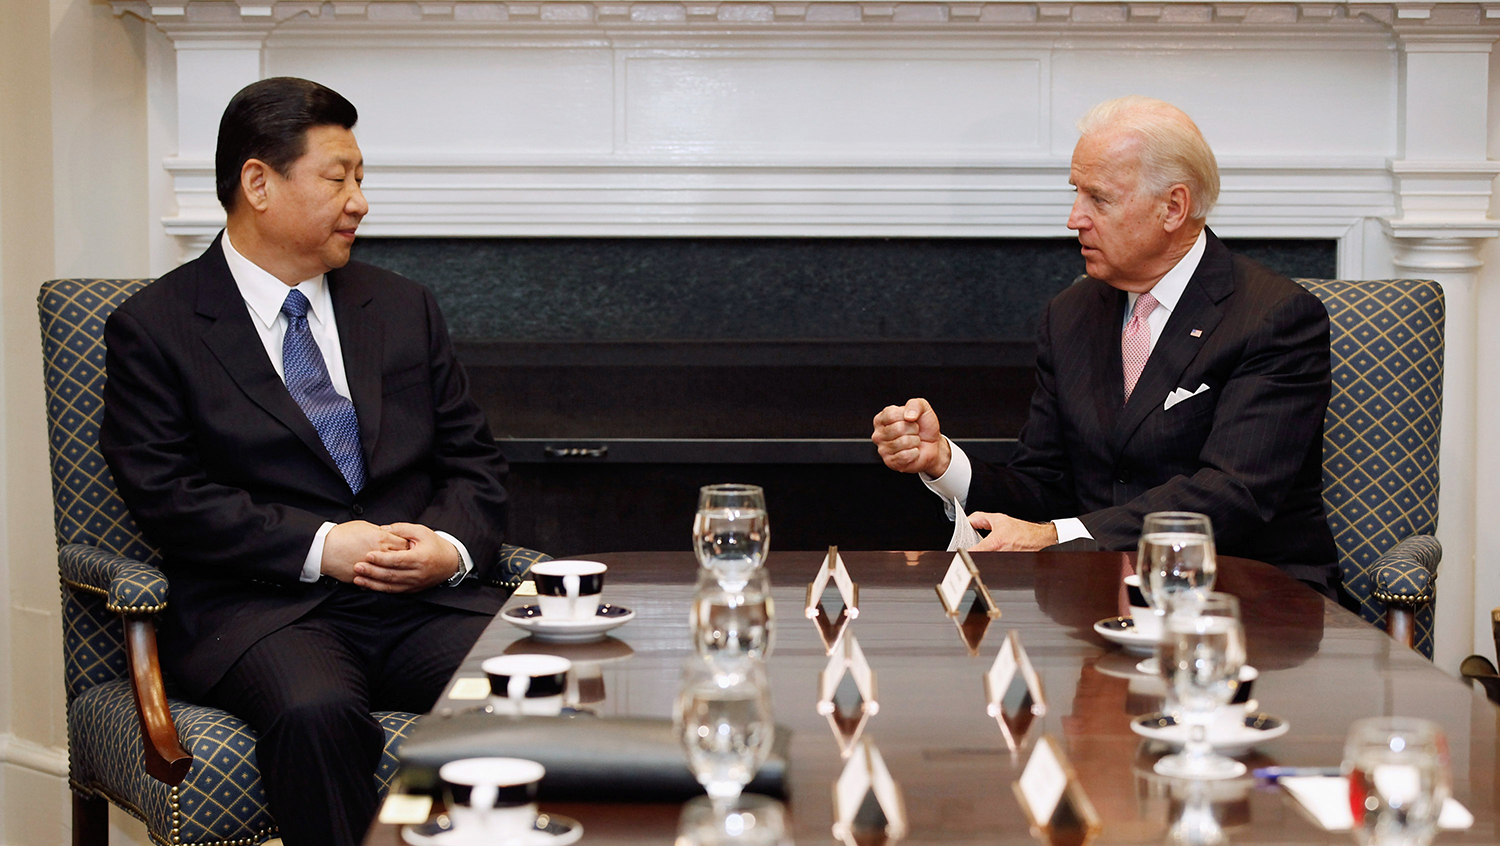 Biden and then-Chinese Vice President Xi Jinping talk during an expanded bilateral meeting with other U.S. and Chinese officials at the White House in Washington on Feb. 14, 2012.